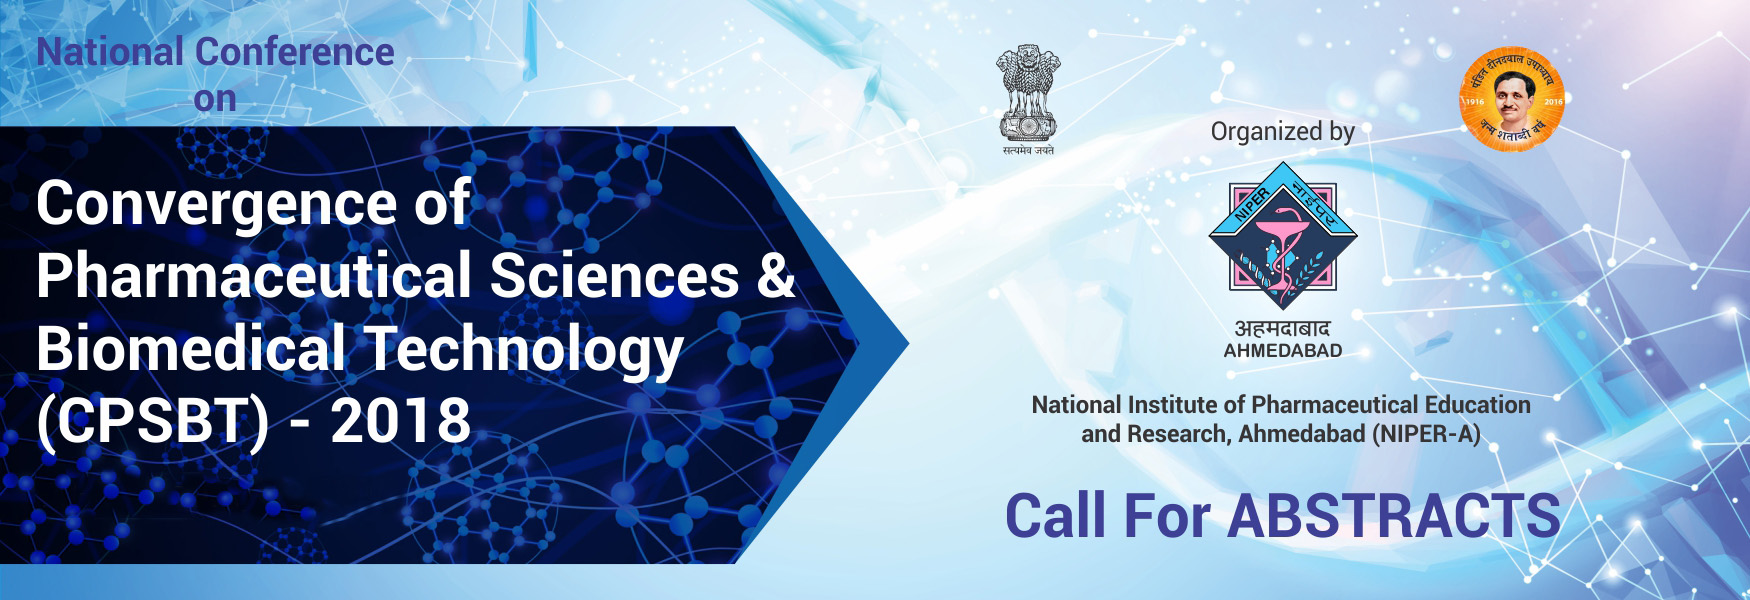 "National Conference on ""Convergence of Pharmaceutical Sciences and Biomedical Technology"", CPSBT-2018"